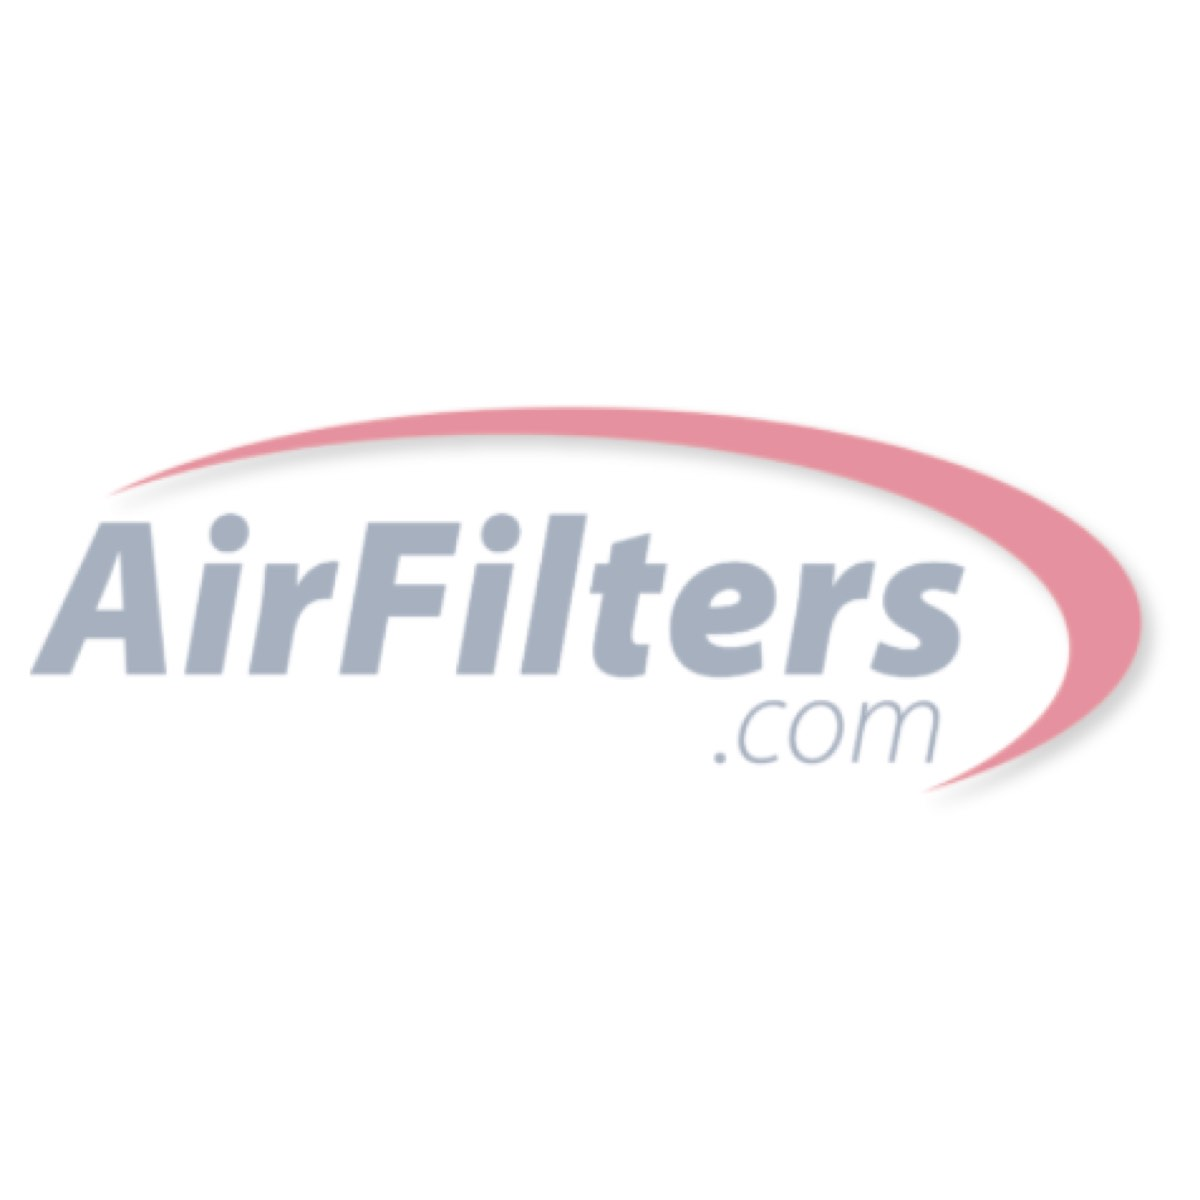 20x25x5 Carrier® Filters (20 1/4 x 25 3/8 x 5 1/4) by Accumulair®